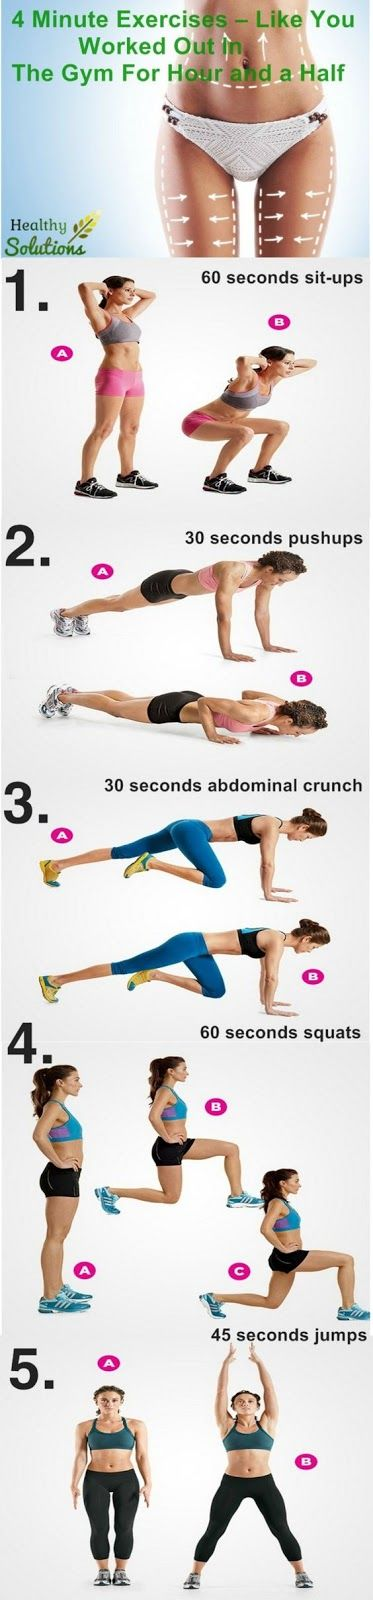 Health Fitness & Beauty: The Gym for 1.5 hour = These 4 min exercises